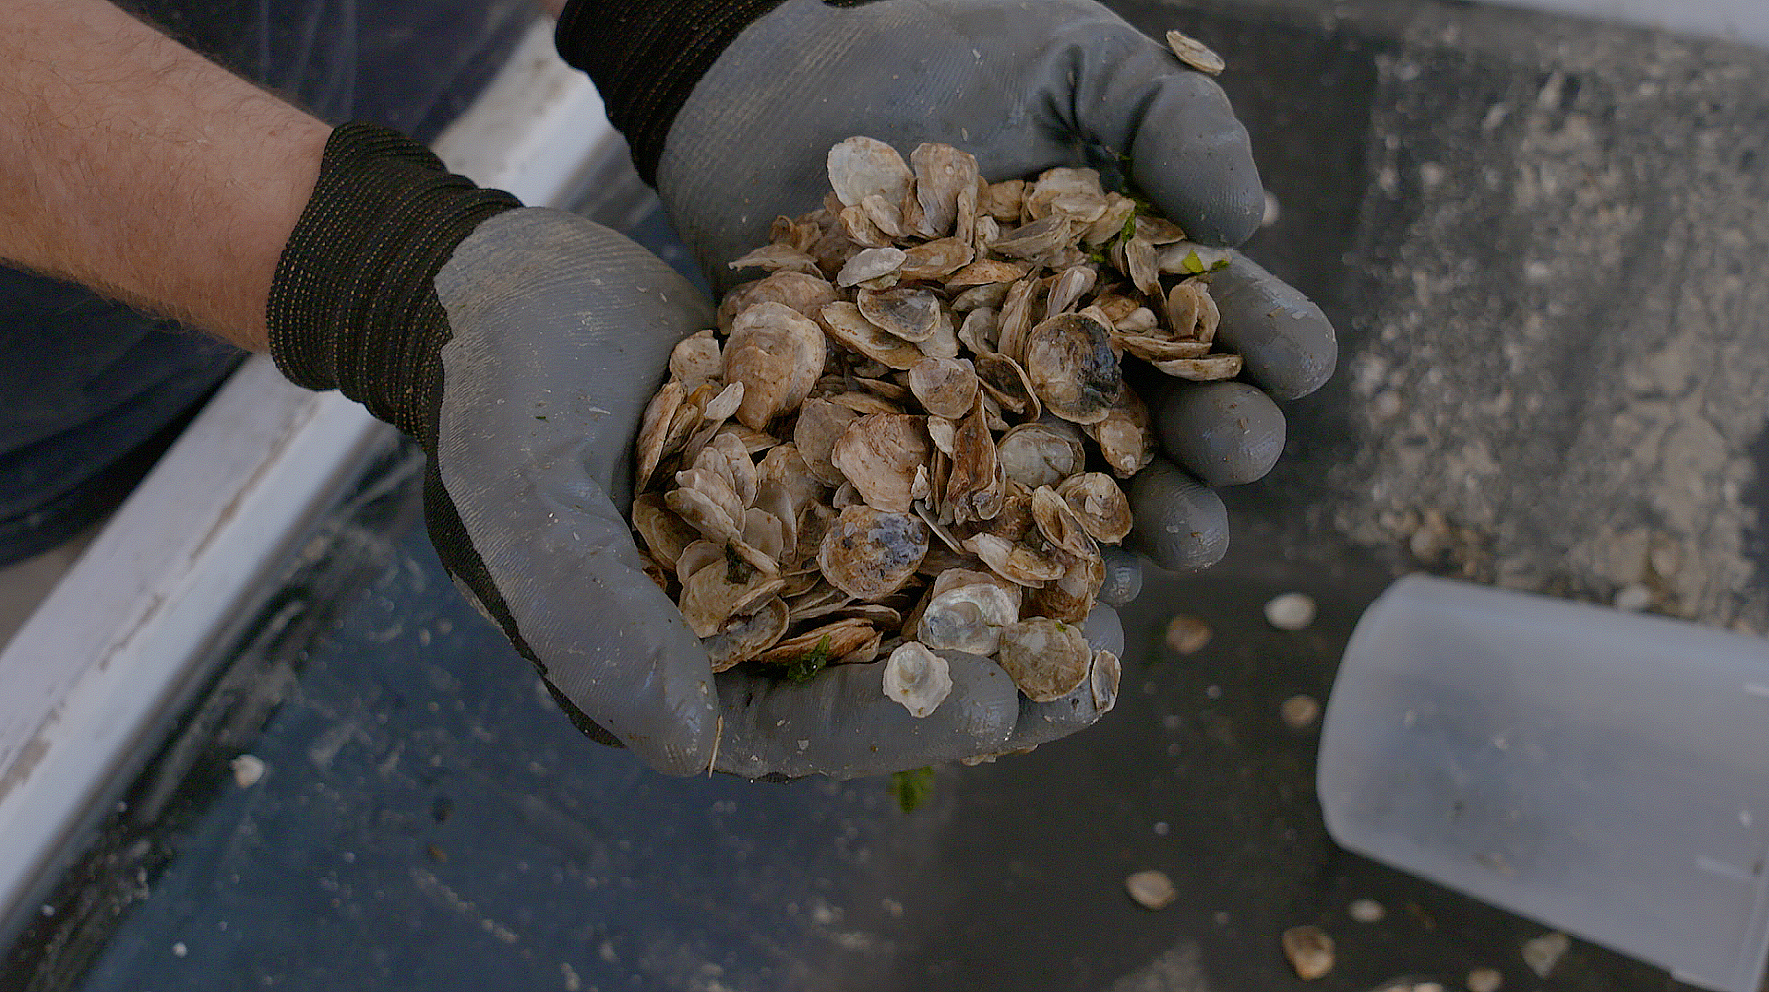 The impact of microplastics on filter feeders like these Olympia oysters will be one area studied by Western's Wayne Landis and his colleagues at OSU as part of the new NSF grant.